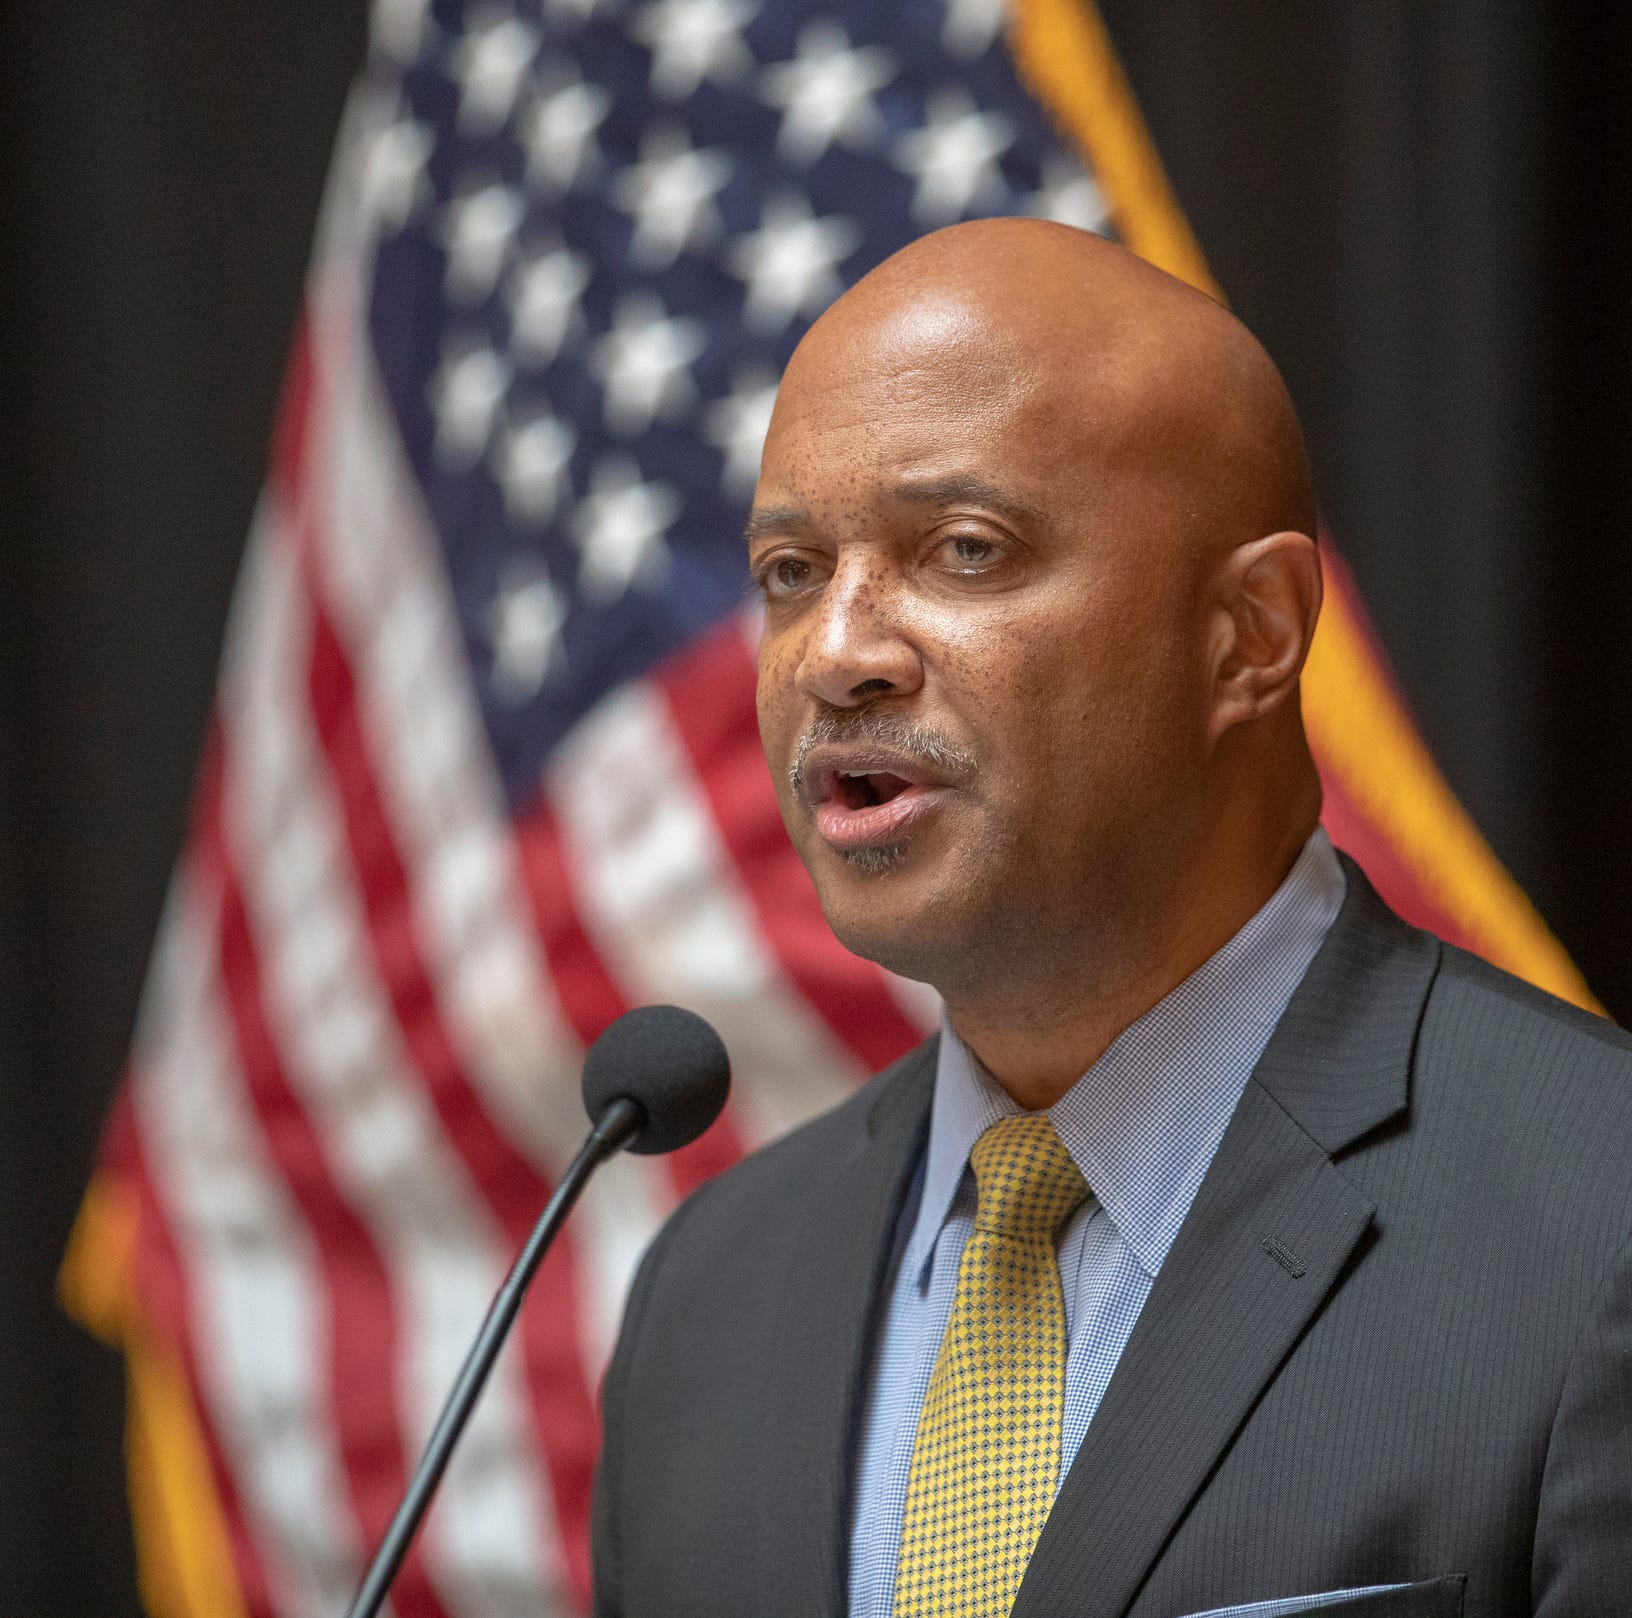 Curtis Hill speaks at a press conference at the start to the legislative session, Indiana Statehouse, Indianapolis, Tuesday, Nov. 20, 2018. Hill has been accused of inappropriately touching four women at a party earlier this year.